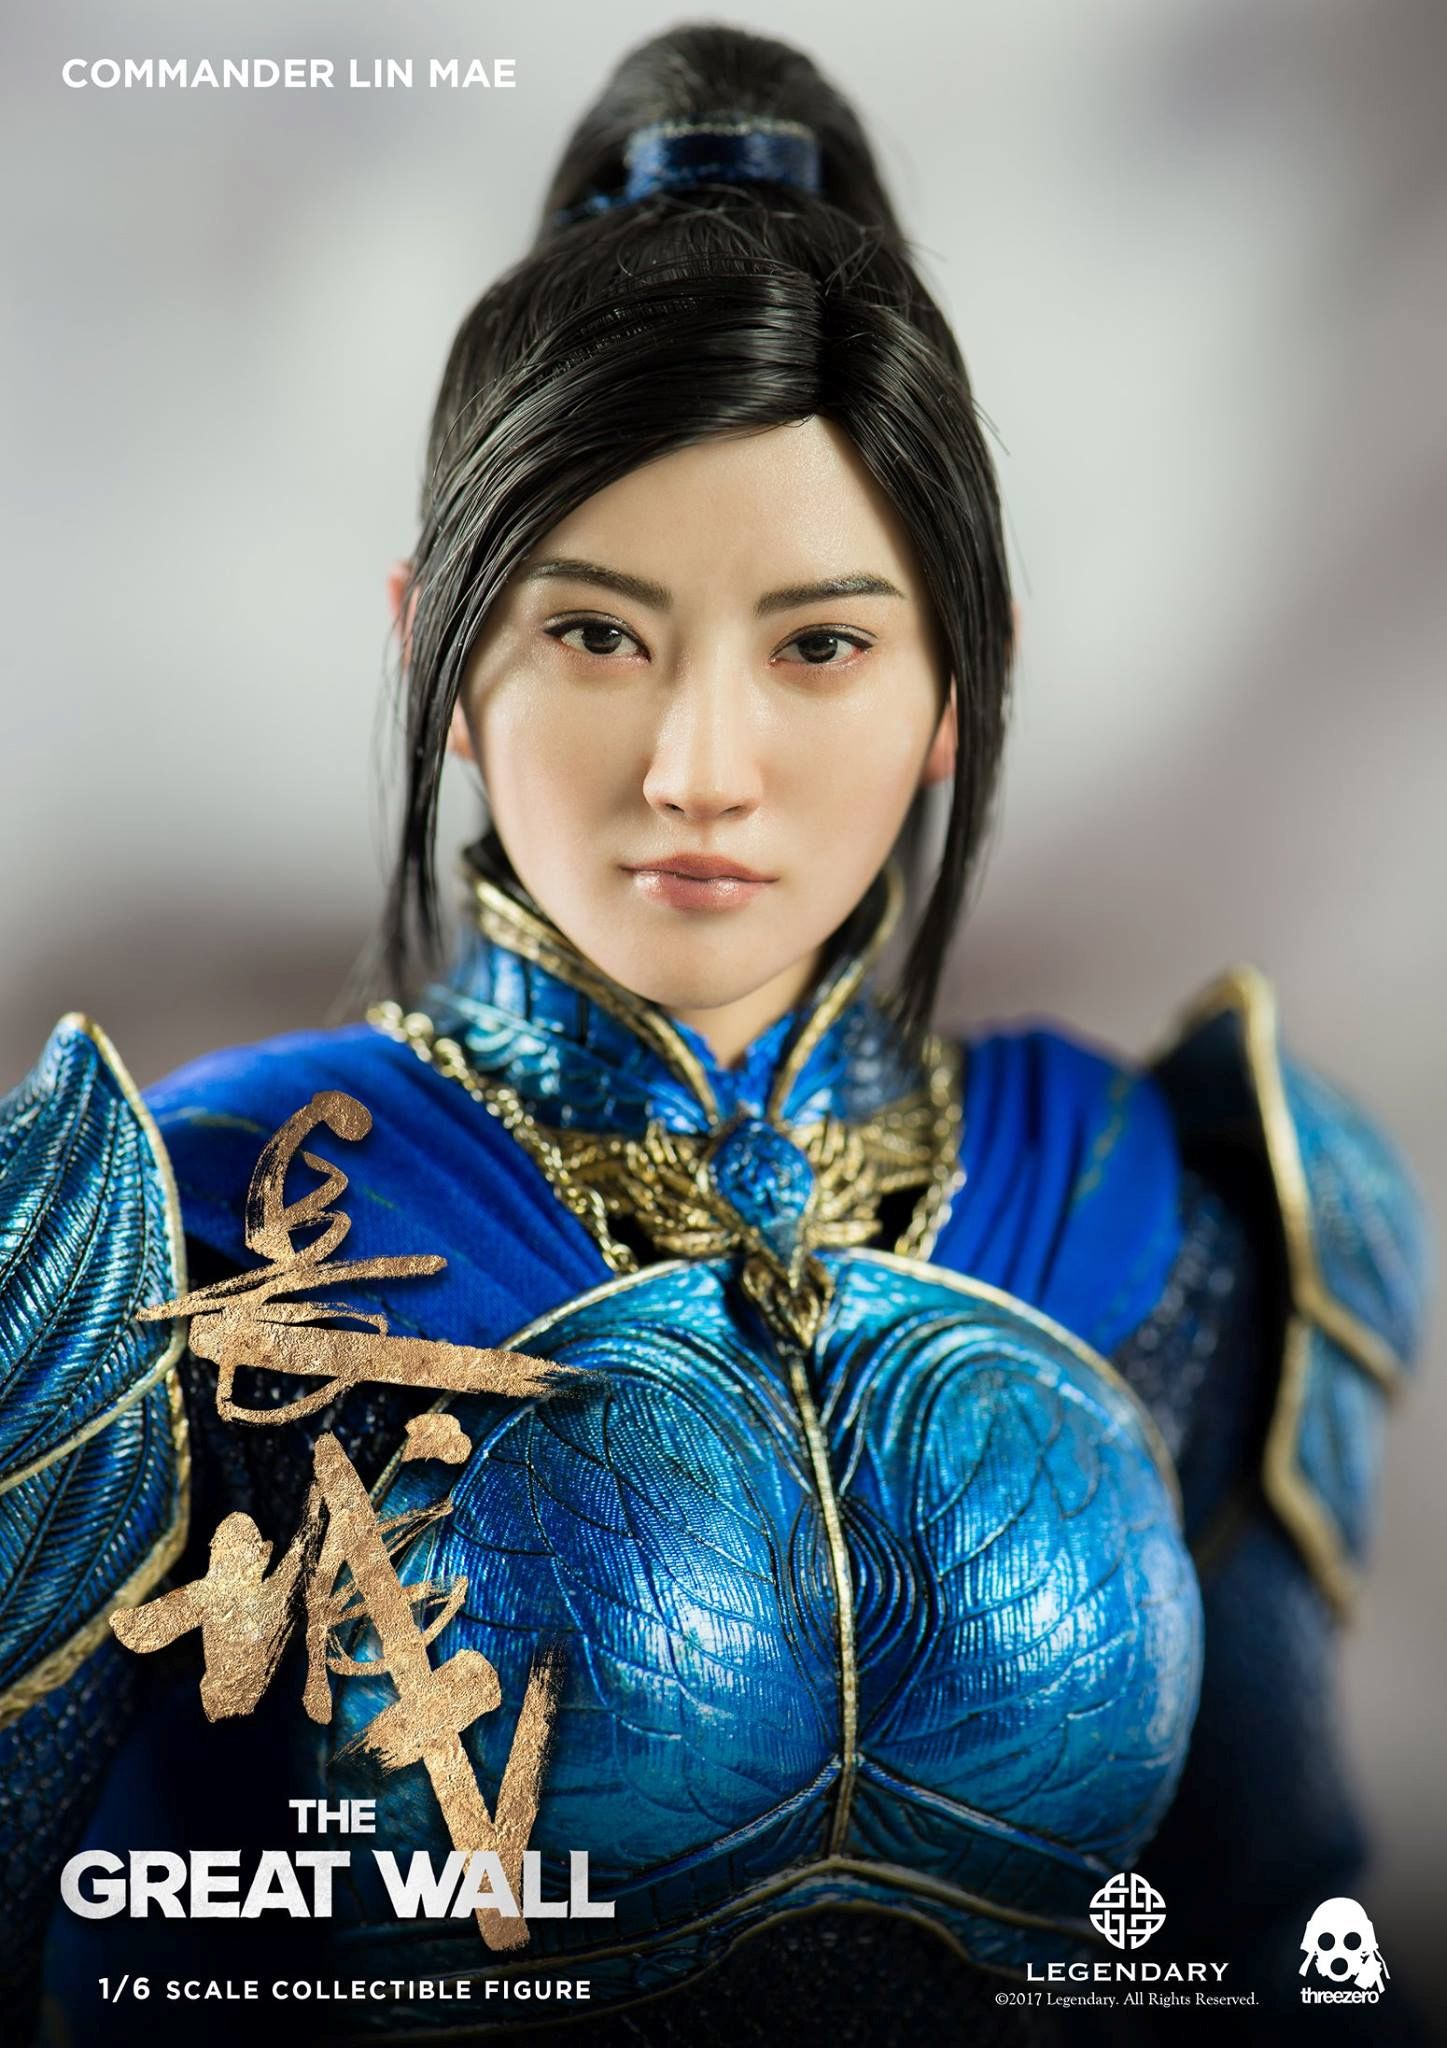 Lin-Mae-The-Great-Wall-Collectible-Action-Figure-03